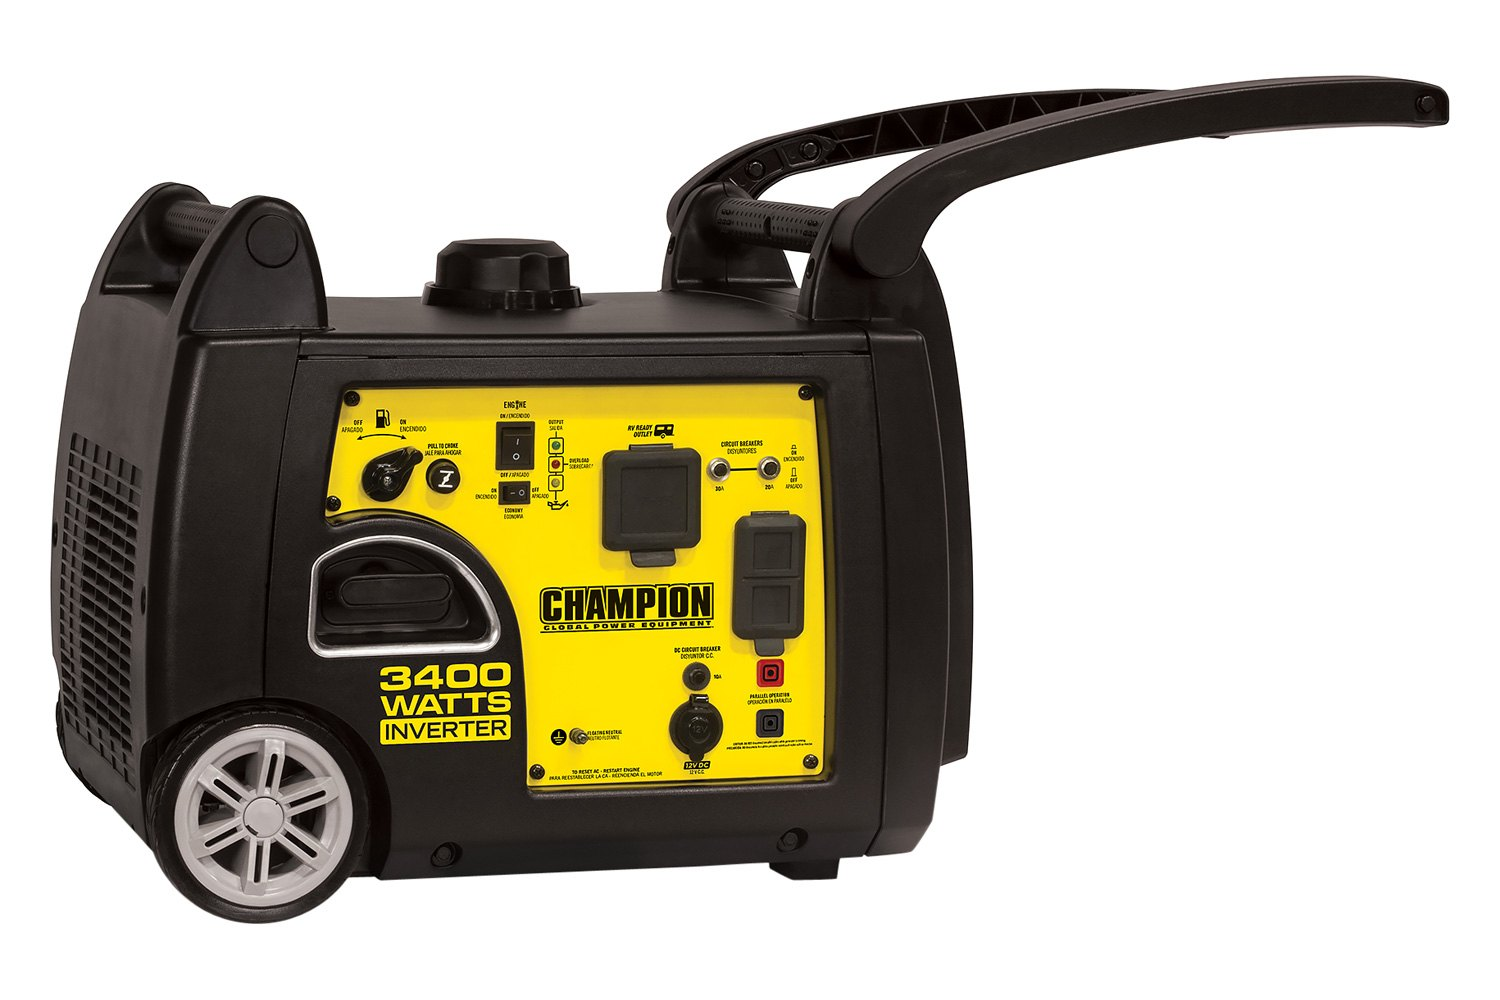 Champion Fulfillment 100233 Portable Gas Powered Recoil